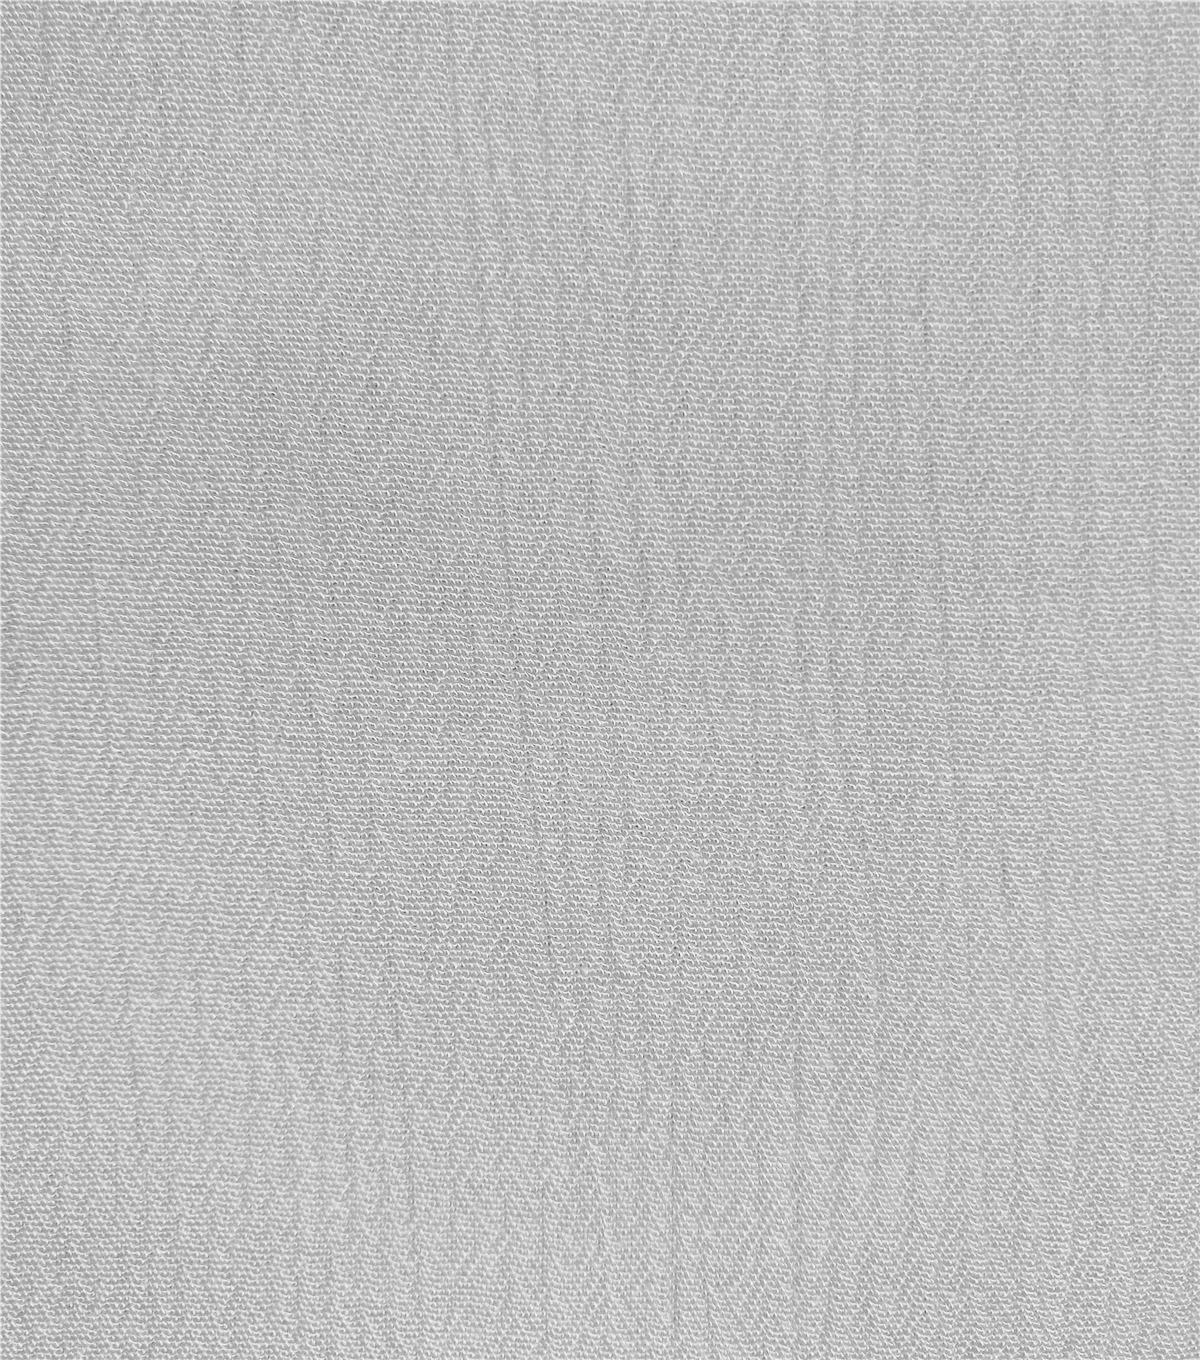 Silky Solids Crinkle Rayon Fabric-White